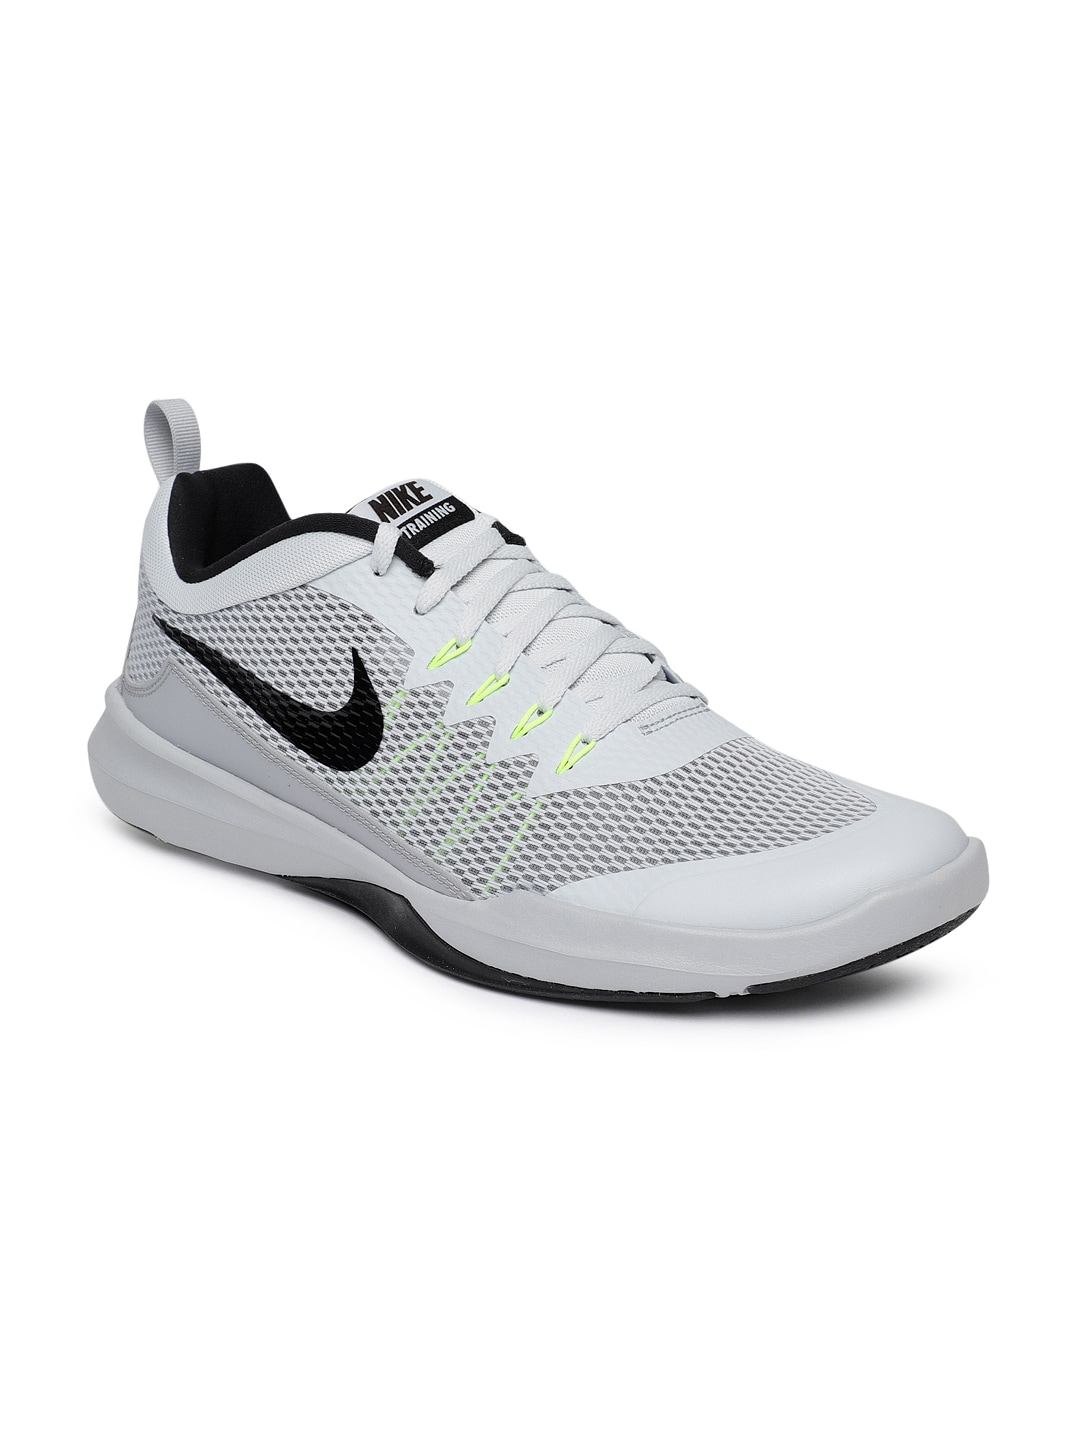 size 40 bfcd0 cb4d6 Nike - Shop for Nike Apparels Online in India   Myntra